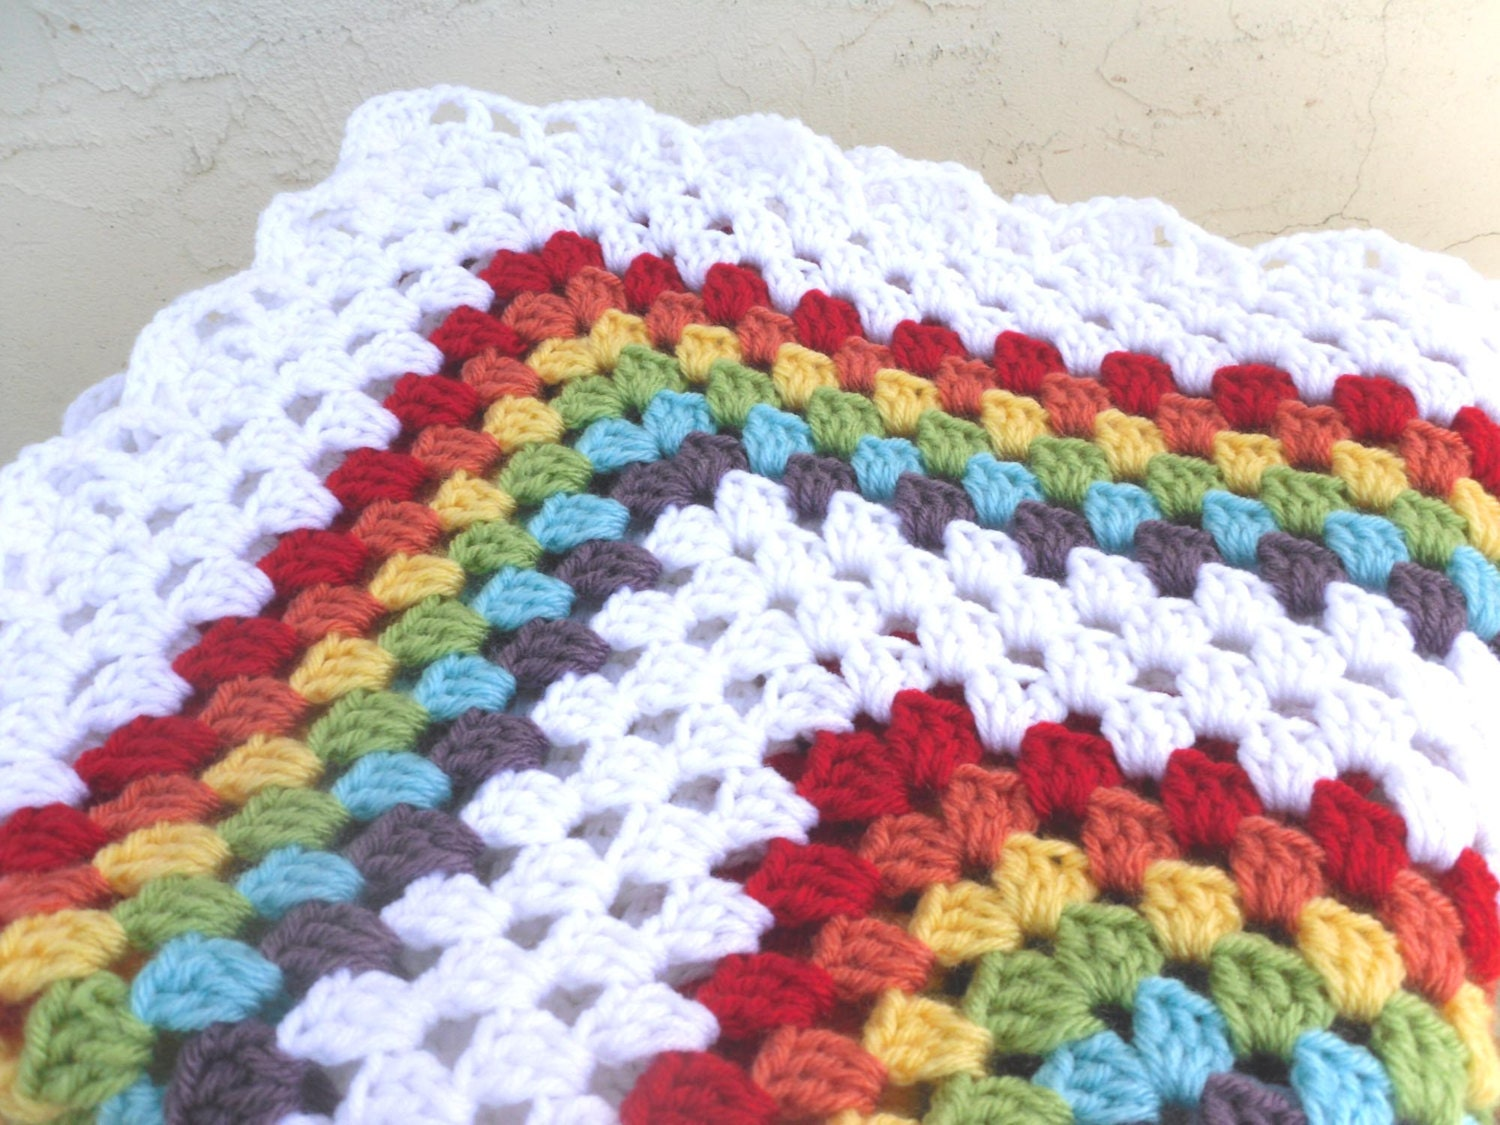 Easy Crochet Granny Square Baby Blanket Pattern : Items similar to Double Rainbow Granny Square Crochet Baby ...